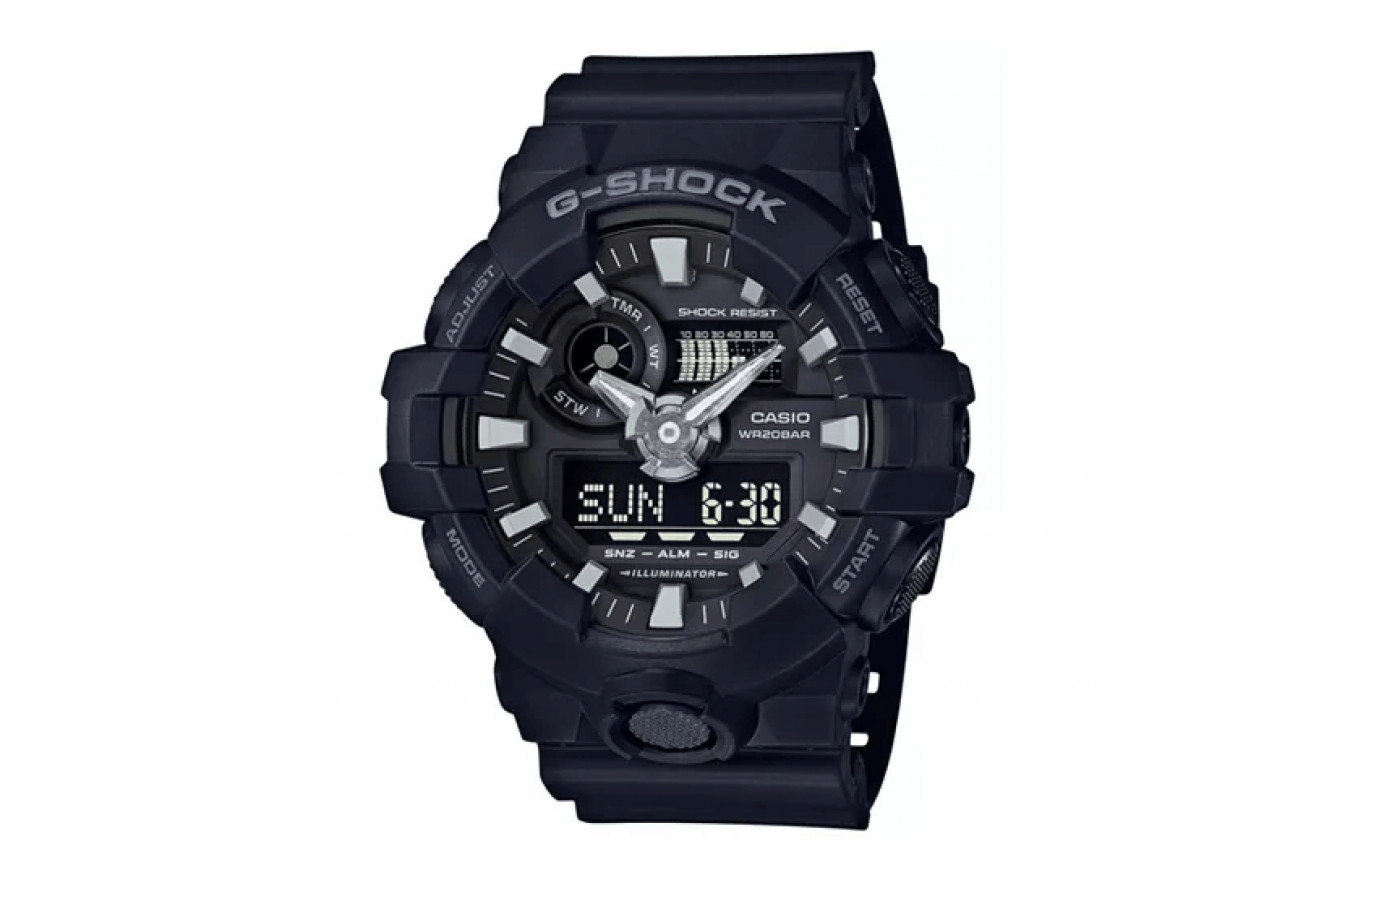 The G-Shock GA700-1B is available in several colorways